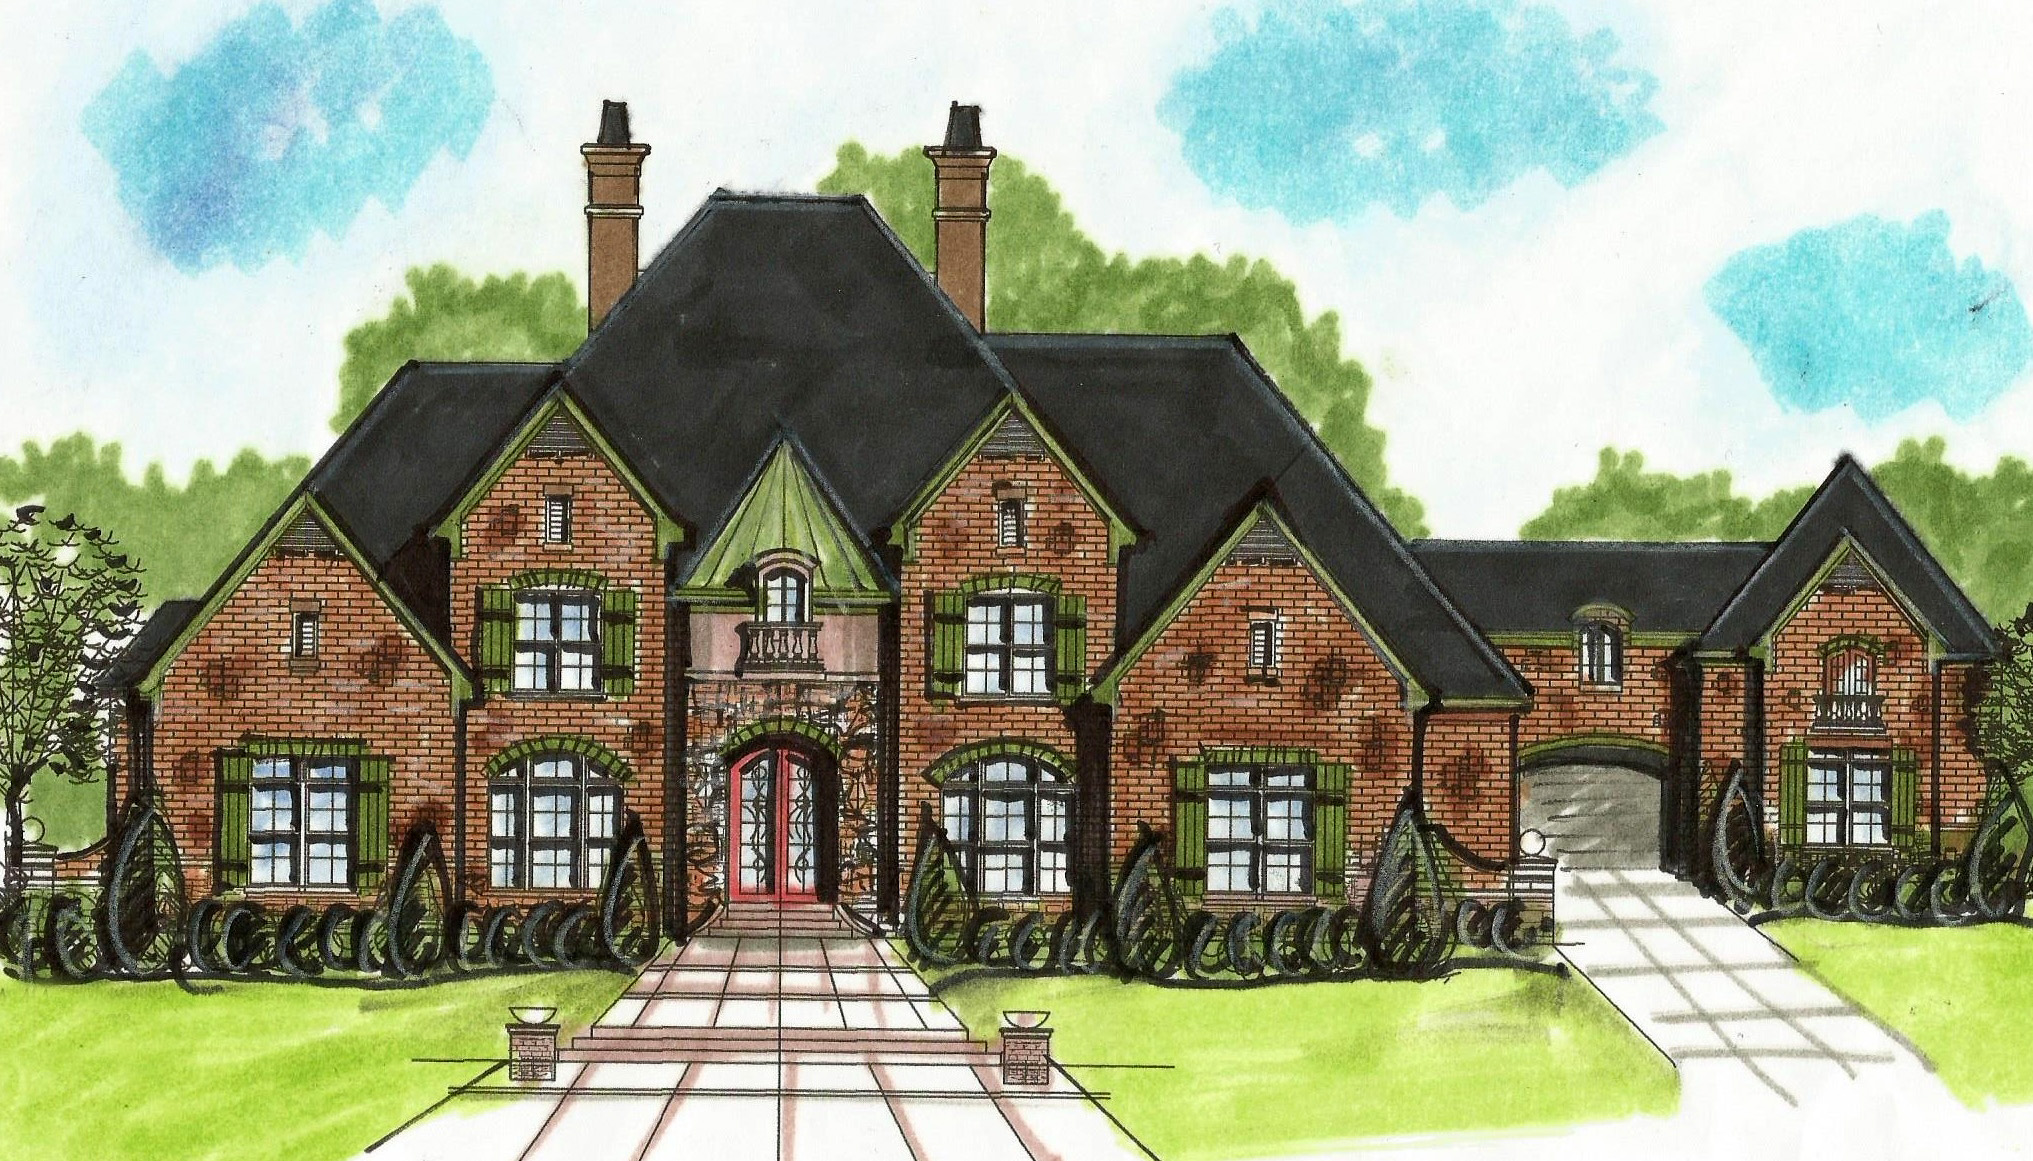 European house plan with porte cochere 13499by for What is a porte cochere